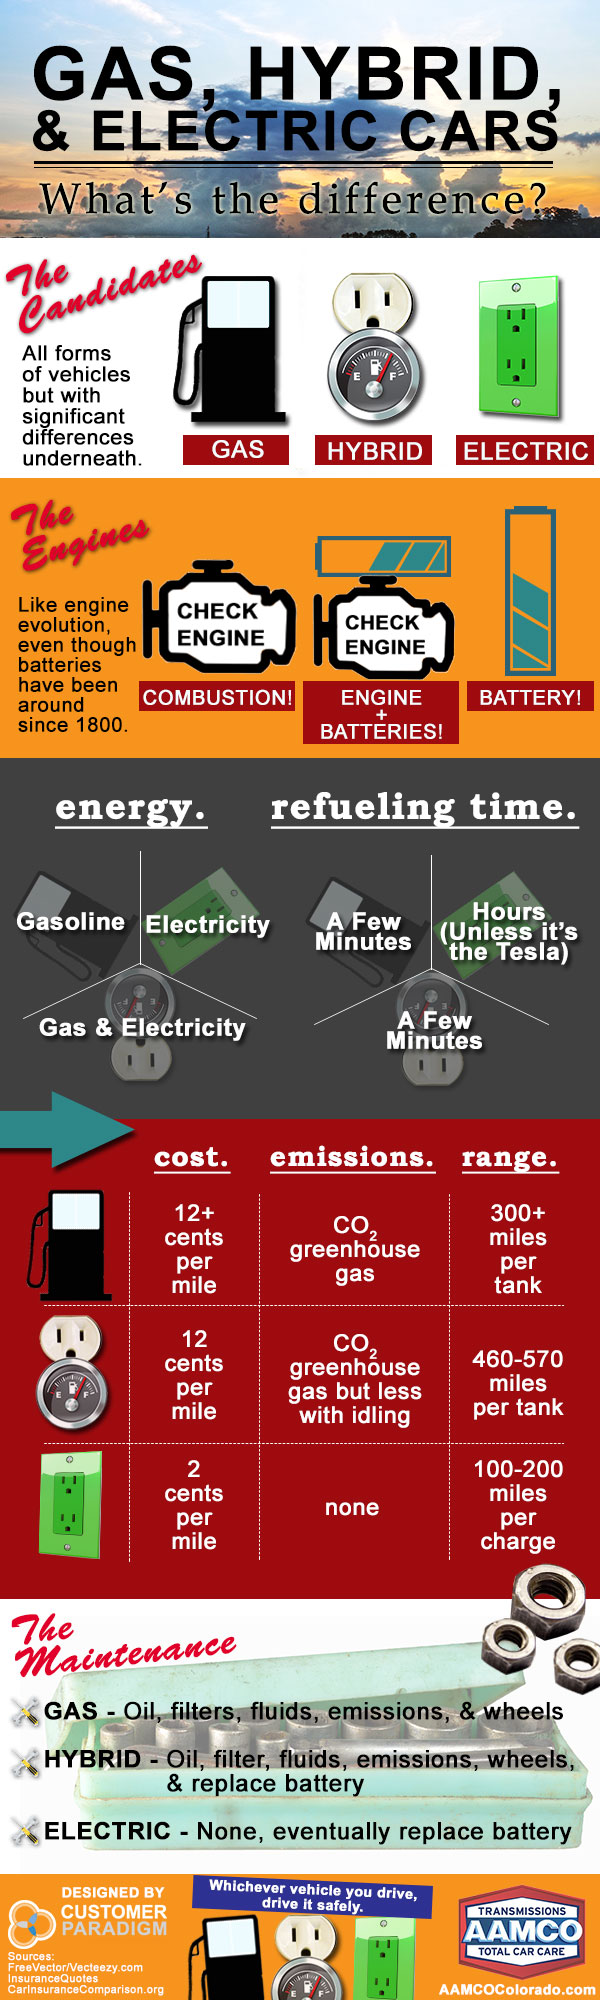 Infographic on gas, hybrid, and electric cars - AAMCO Colorado